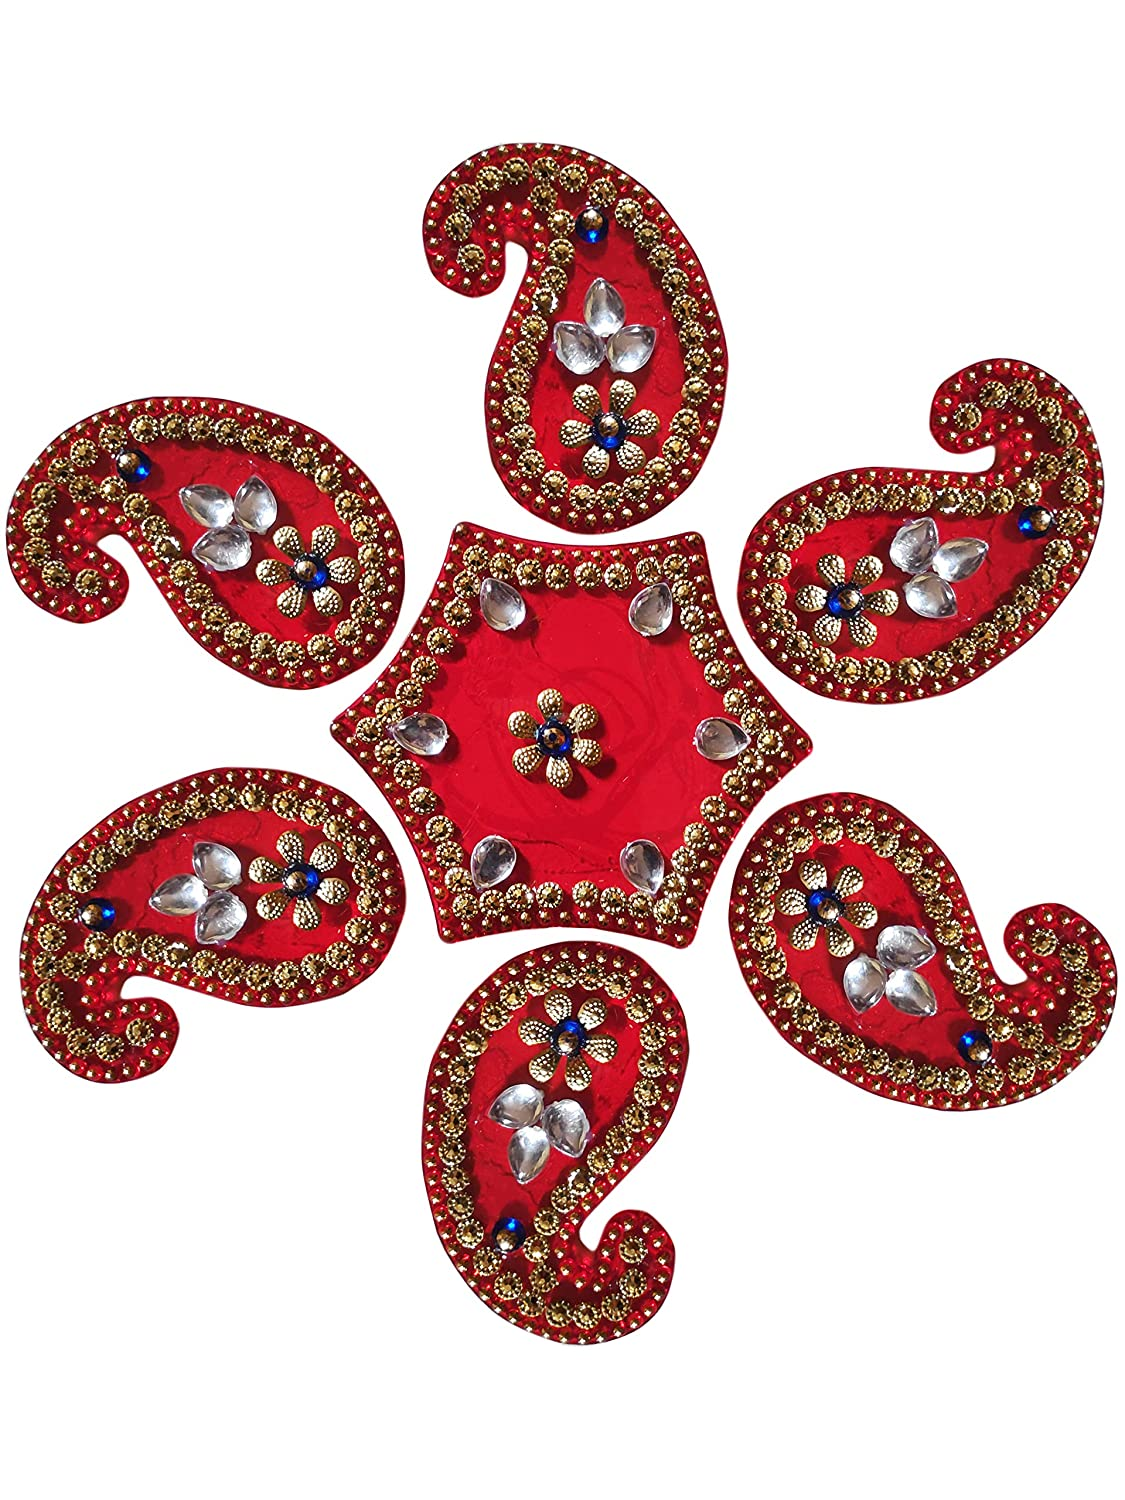 Super Rakhi For Brother Paisley Design Diwali Rangoli Floor Decorations Acrylic Paisley Shape with Studded Stones and Sequins, Traditional Festive Home Decor Super Rakhi Store